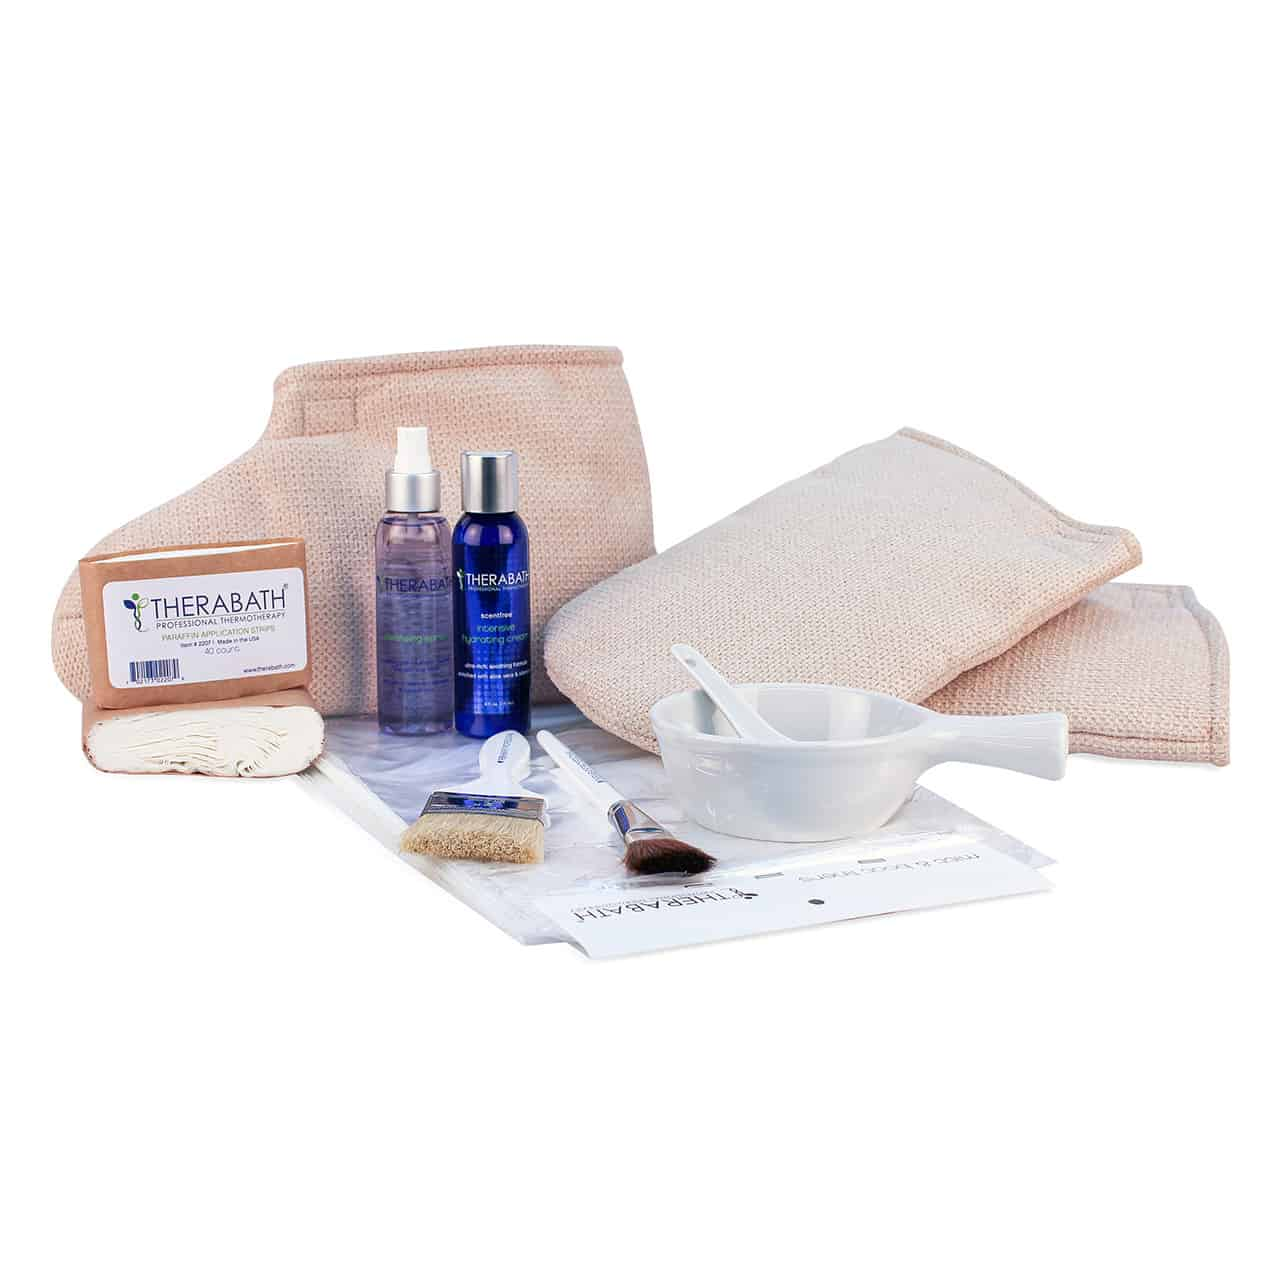 Therabath Super Paraffin Accessory Kit